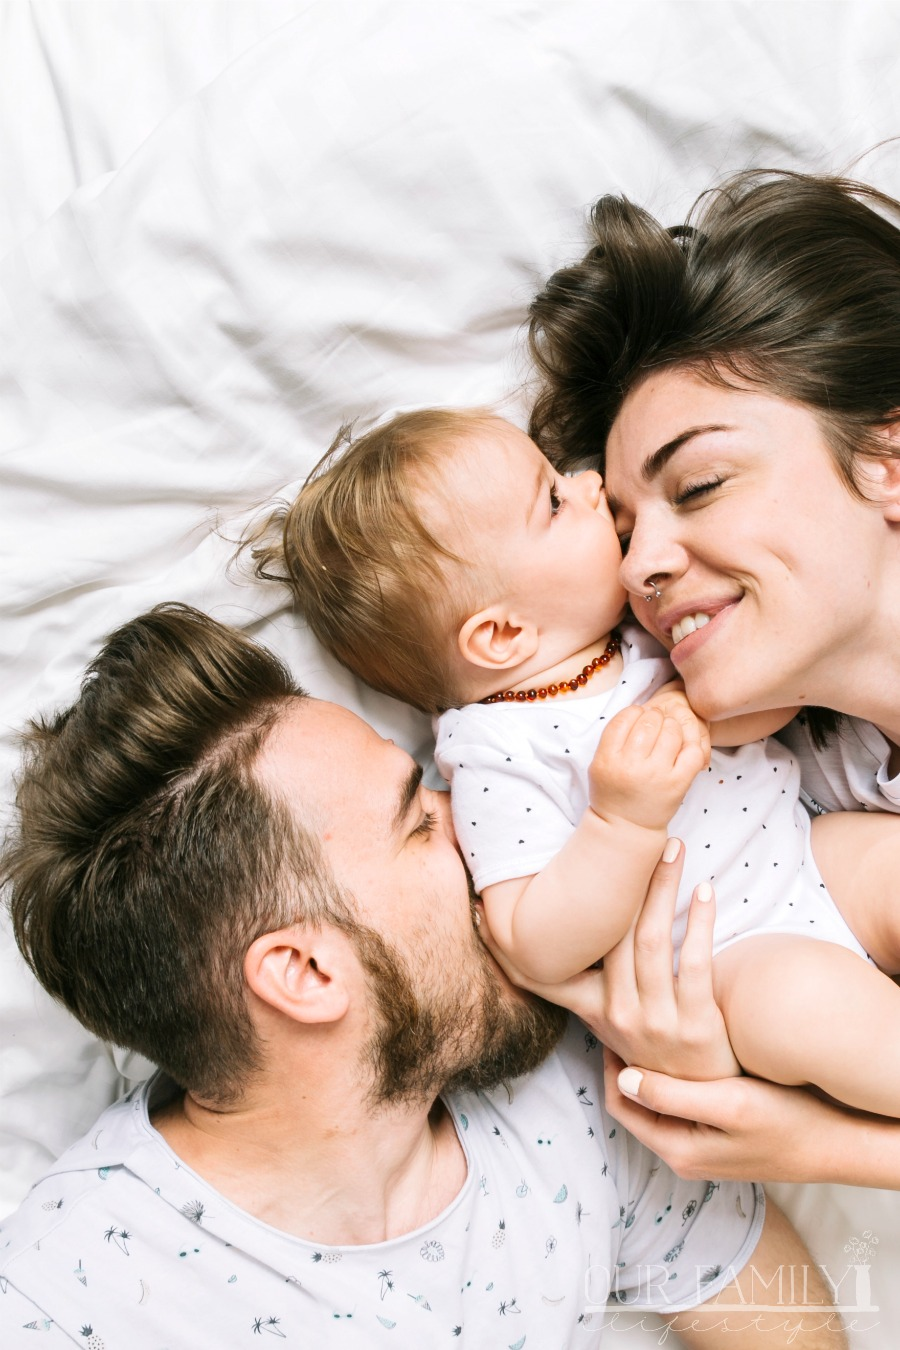 How To Adapt Your Lifestyle When You Become A Parent